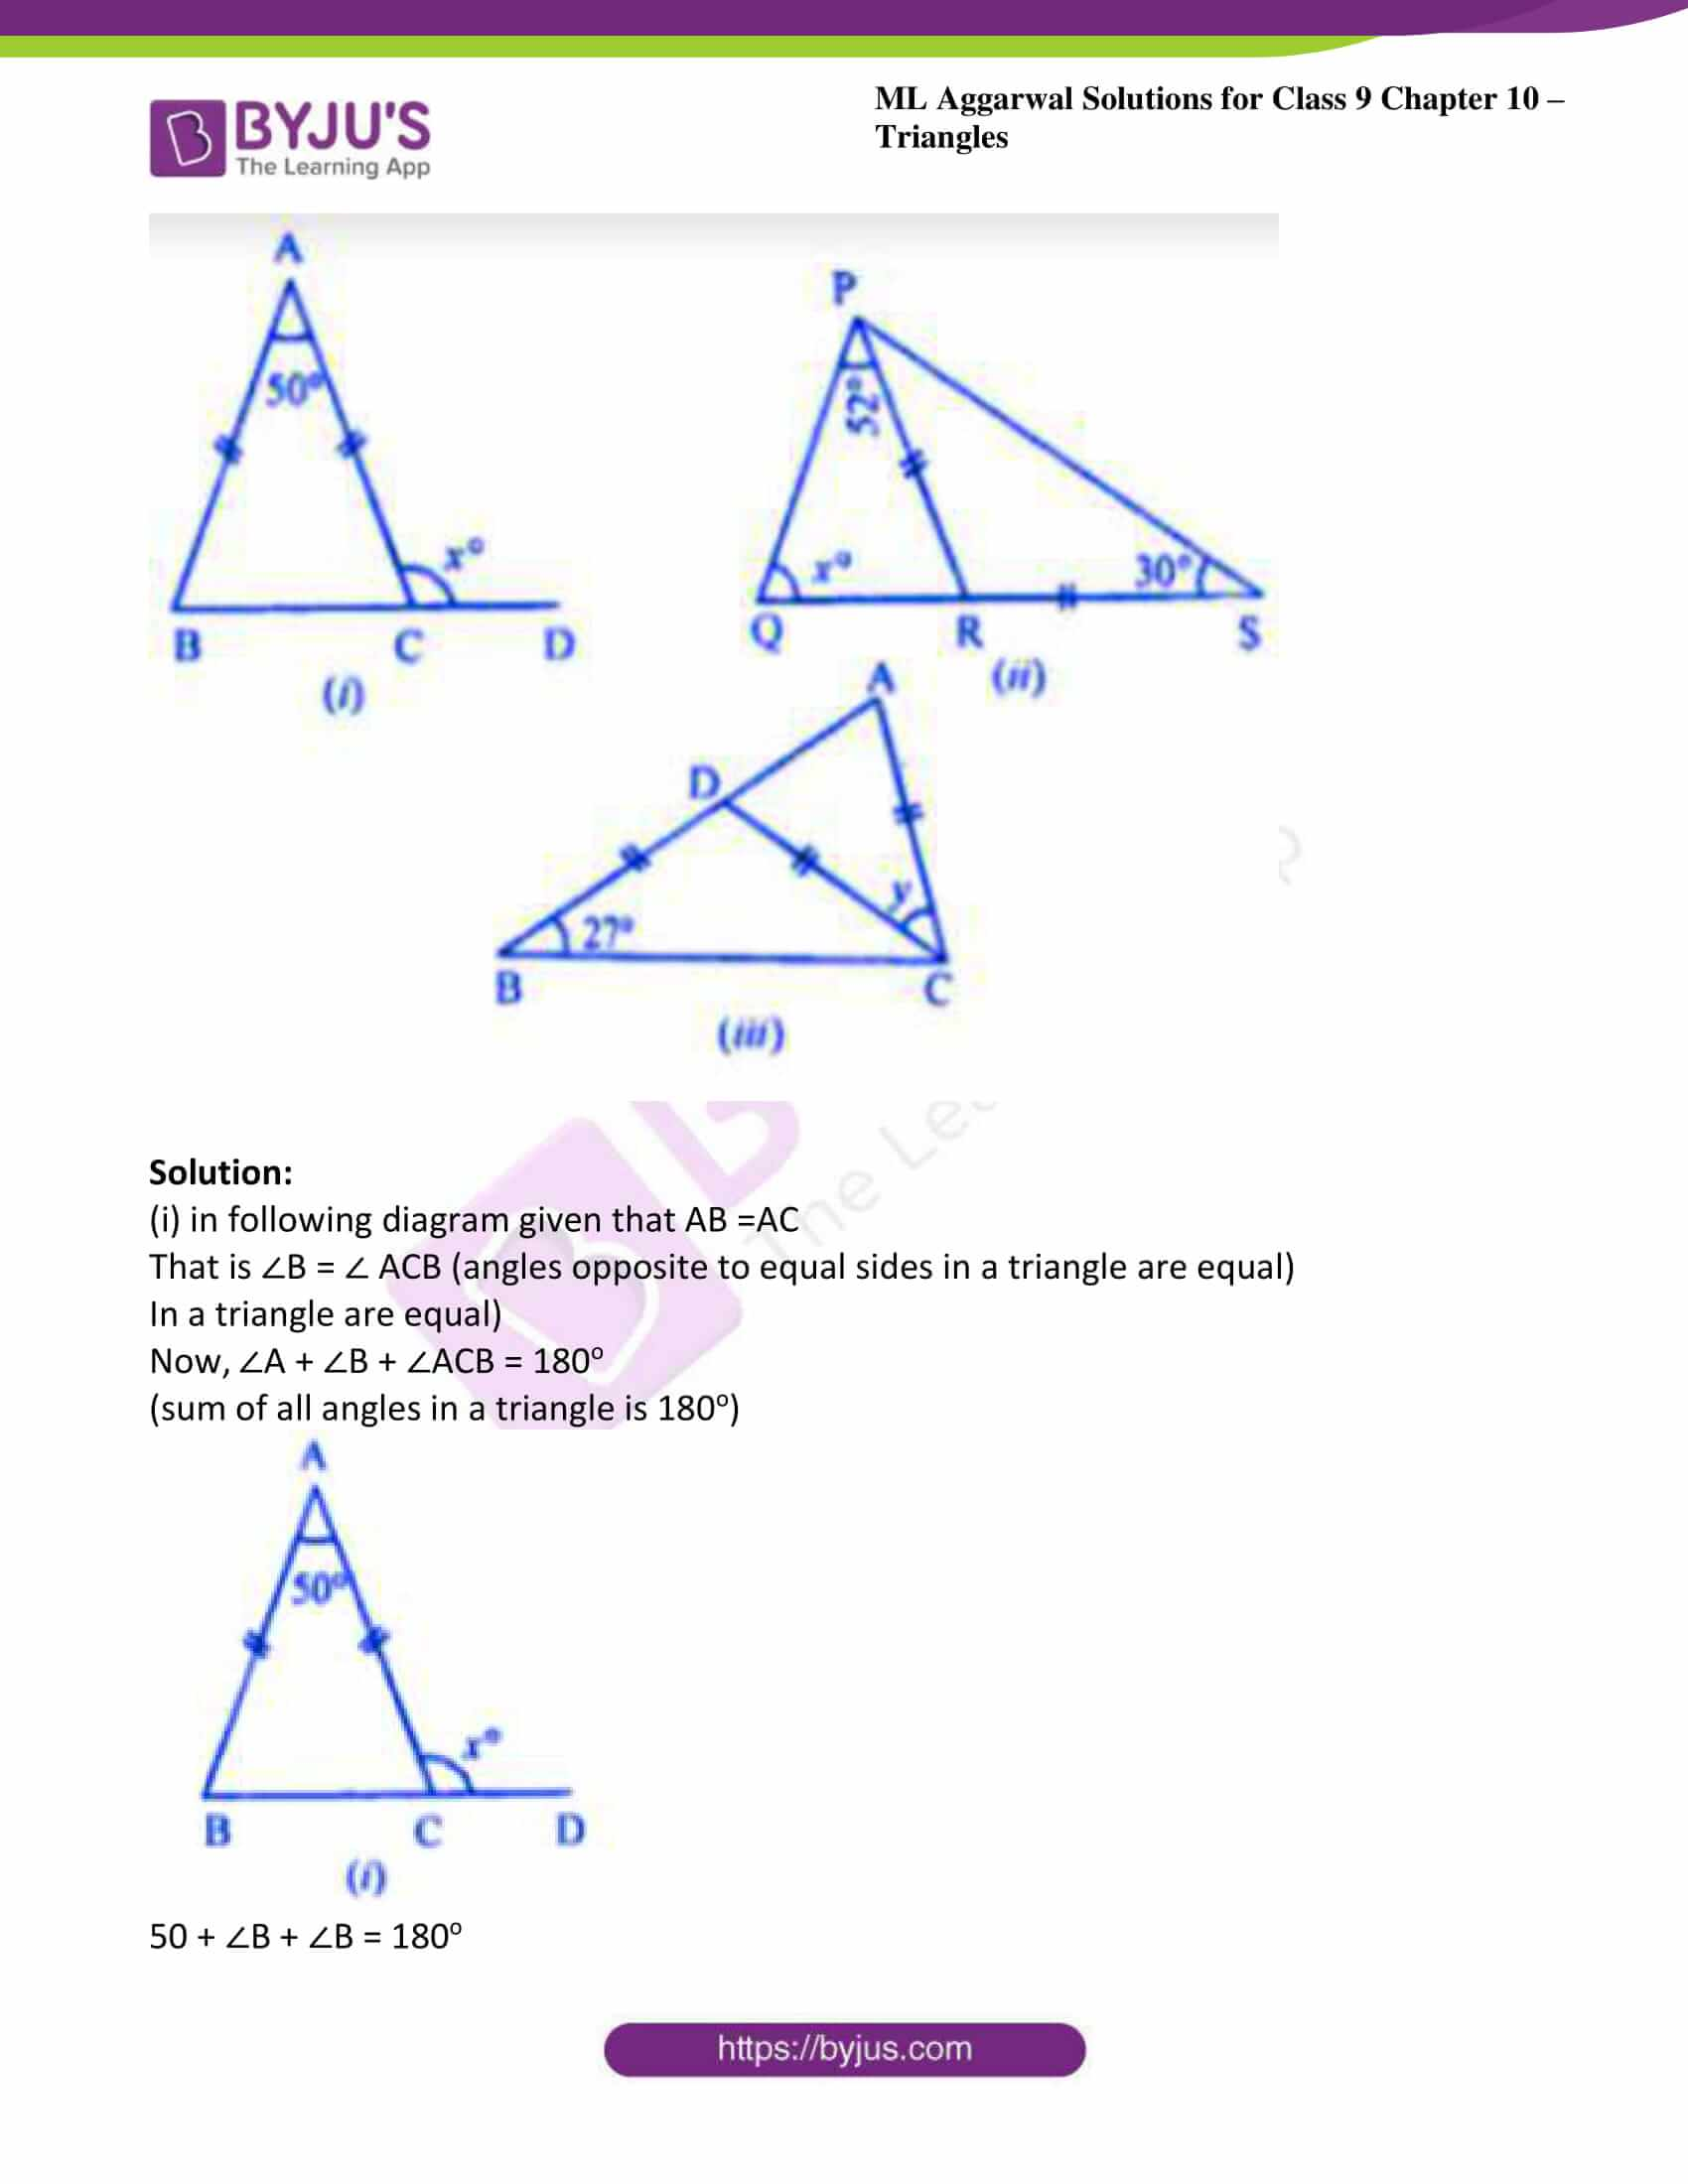 ml aggarwal solutions for class 9 maths chapter 10 17